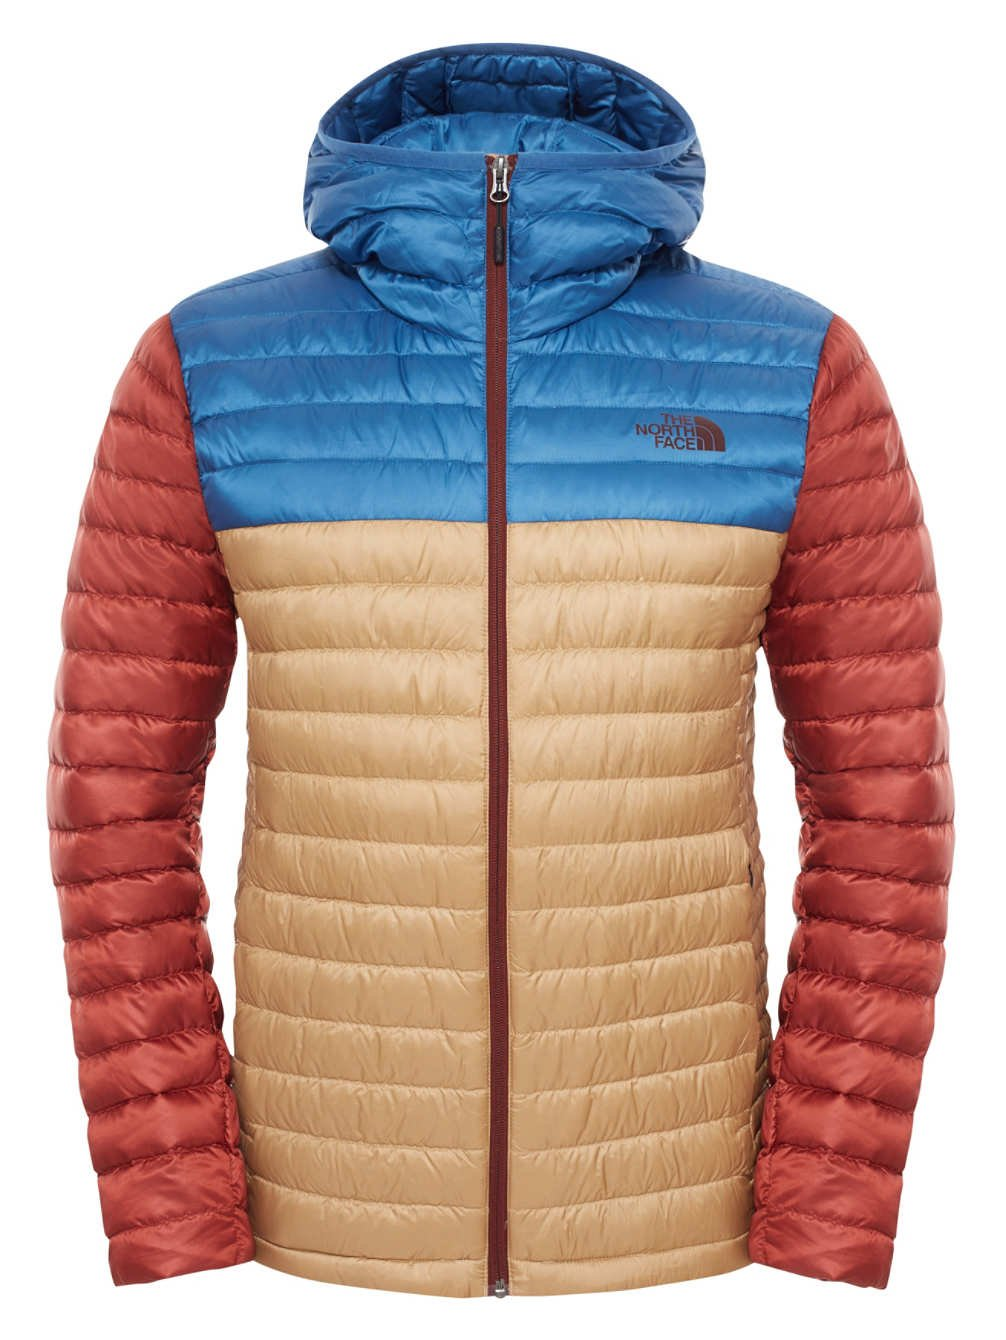 The North Face Herren Daunenjacke günstig bestellen